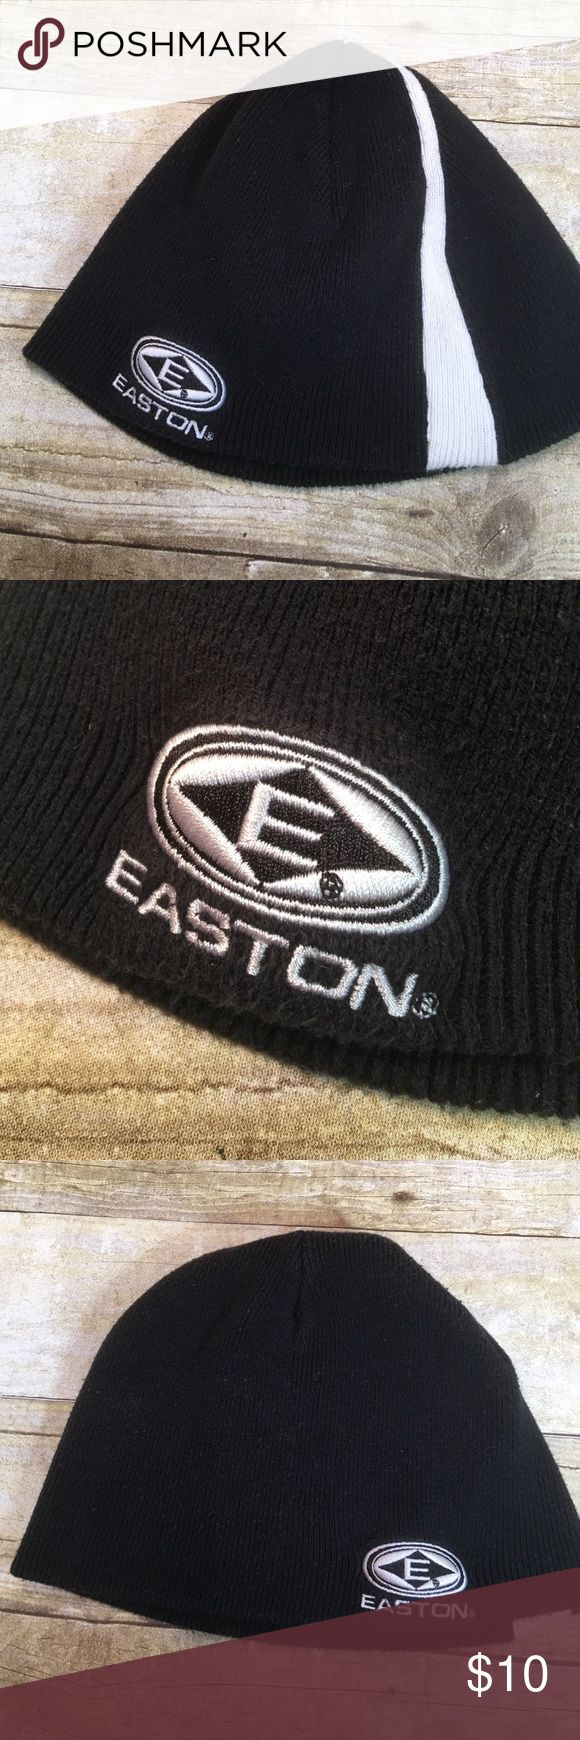 "Easton Black & White Beanie 60% cotton 40% acrylic. 7 1/2"" tall. 10"" circle. Stretchy. Excellent condition and comes from my non smoking home Easton Accessories Hats"